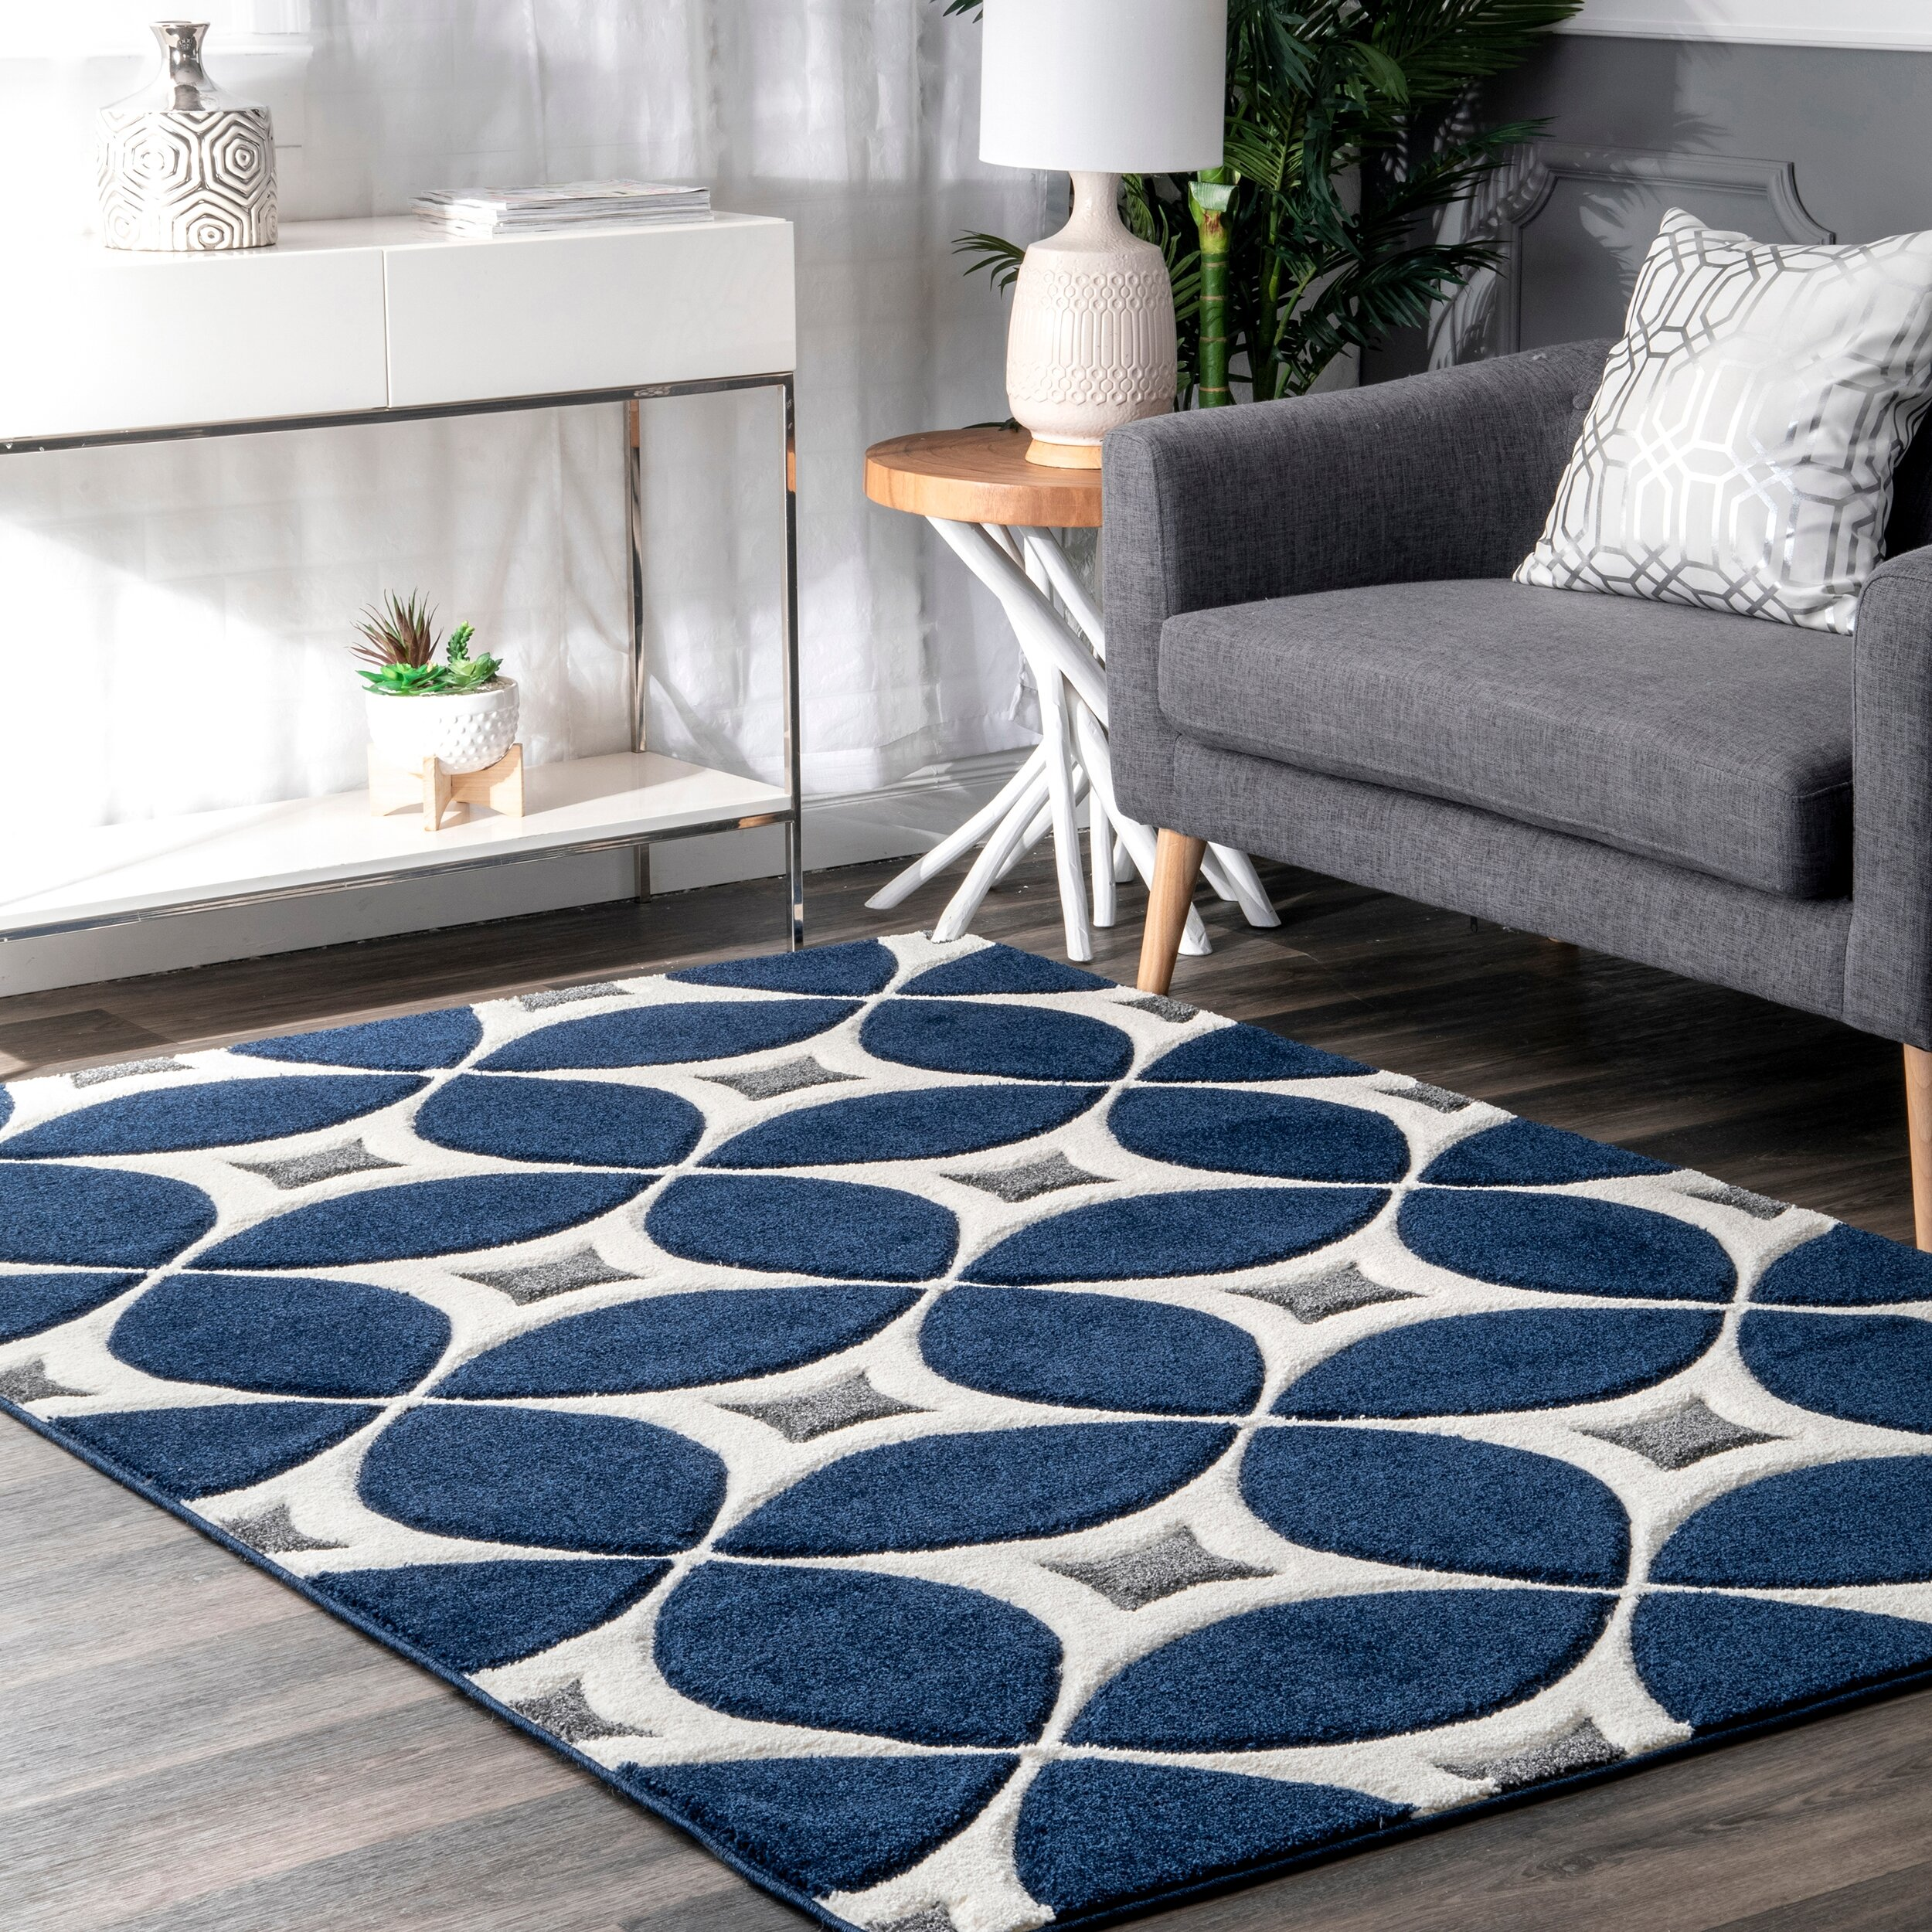 Picture of: Langley Street Jamar Hand Tufted Navy Blue White Gray Area Rug Reviews Wayfair Ca